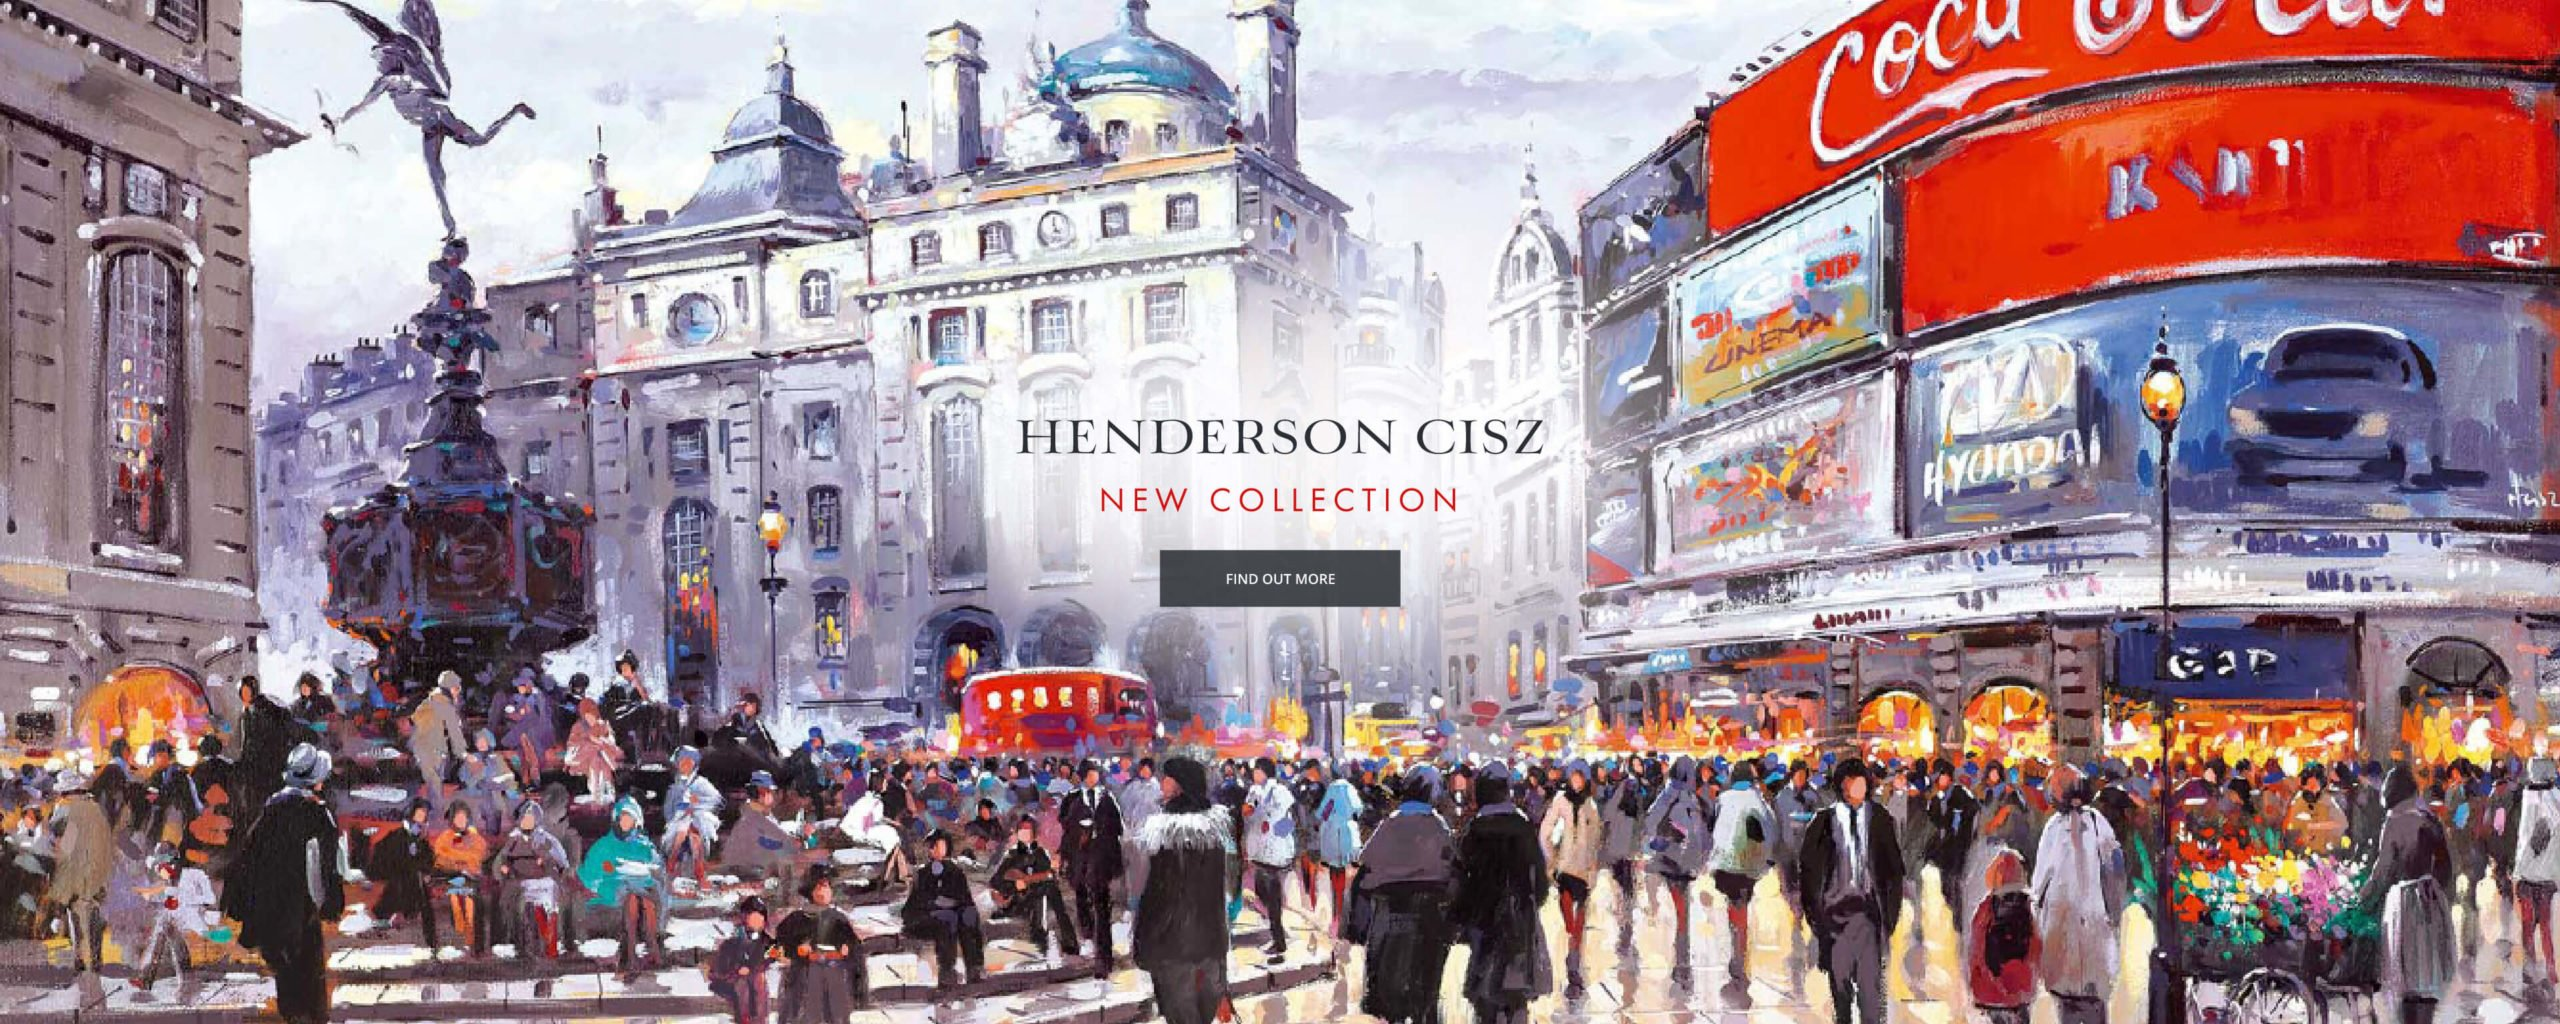 Henderson Cisz New Collection